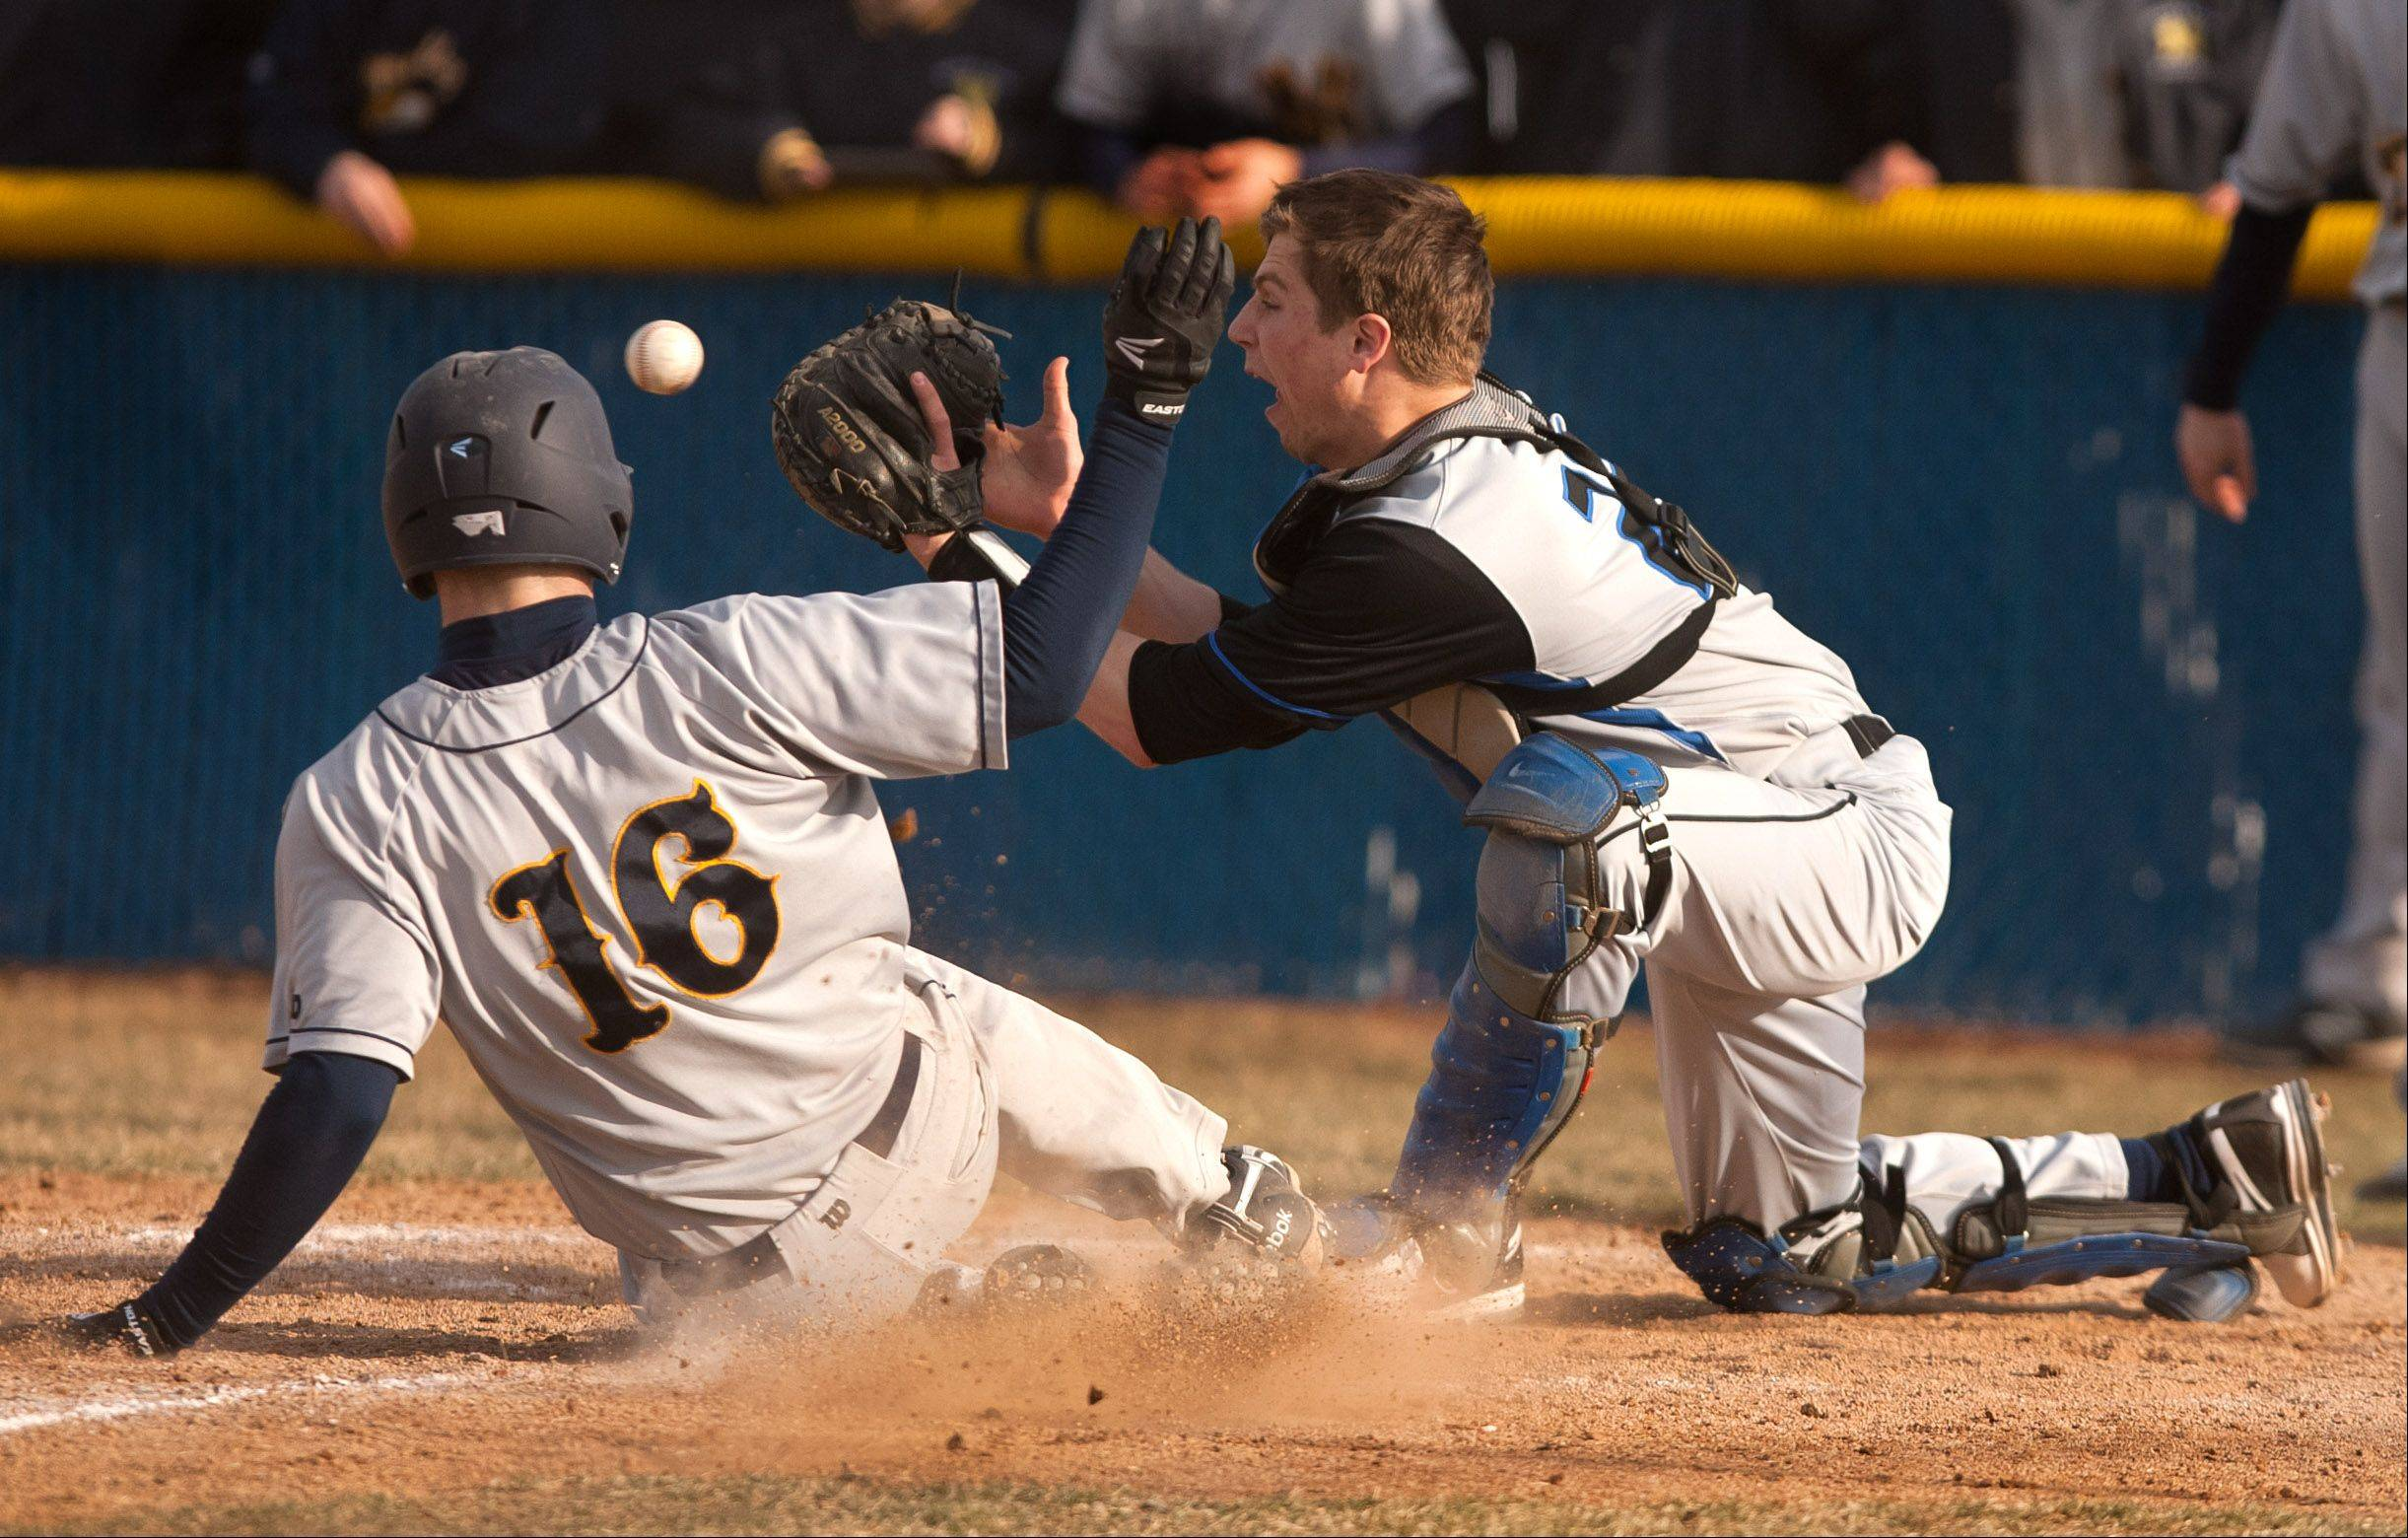 Neuqua Valley's Jeff Evak slides safely into home as the ball is late getting to St. Charles North catcher Ryan Thomas, during boys baseball action in Naperville.